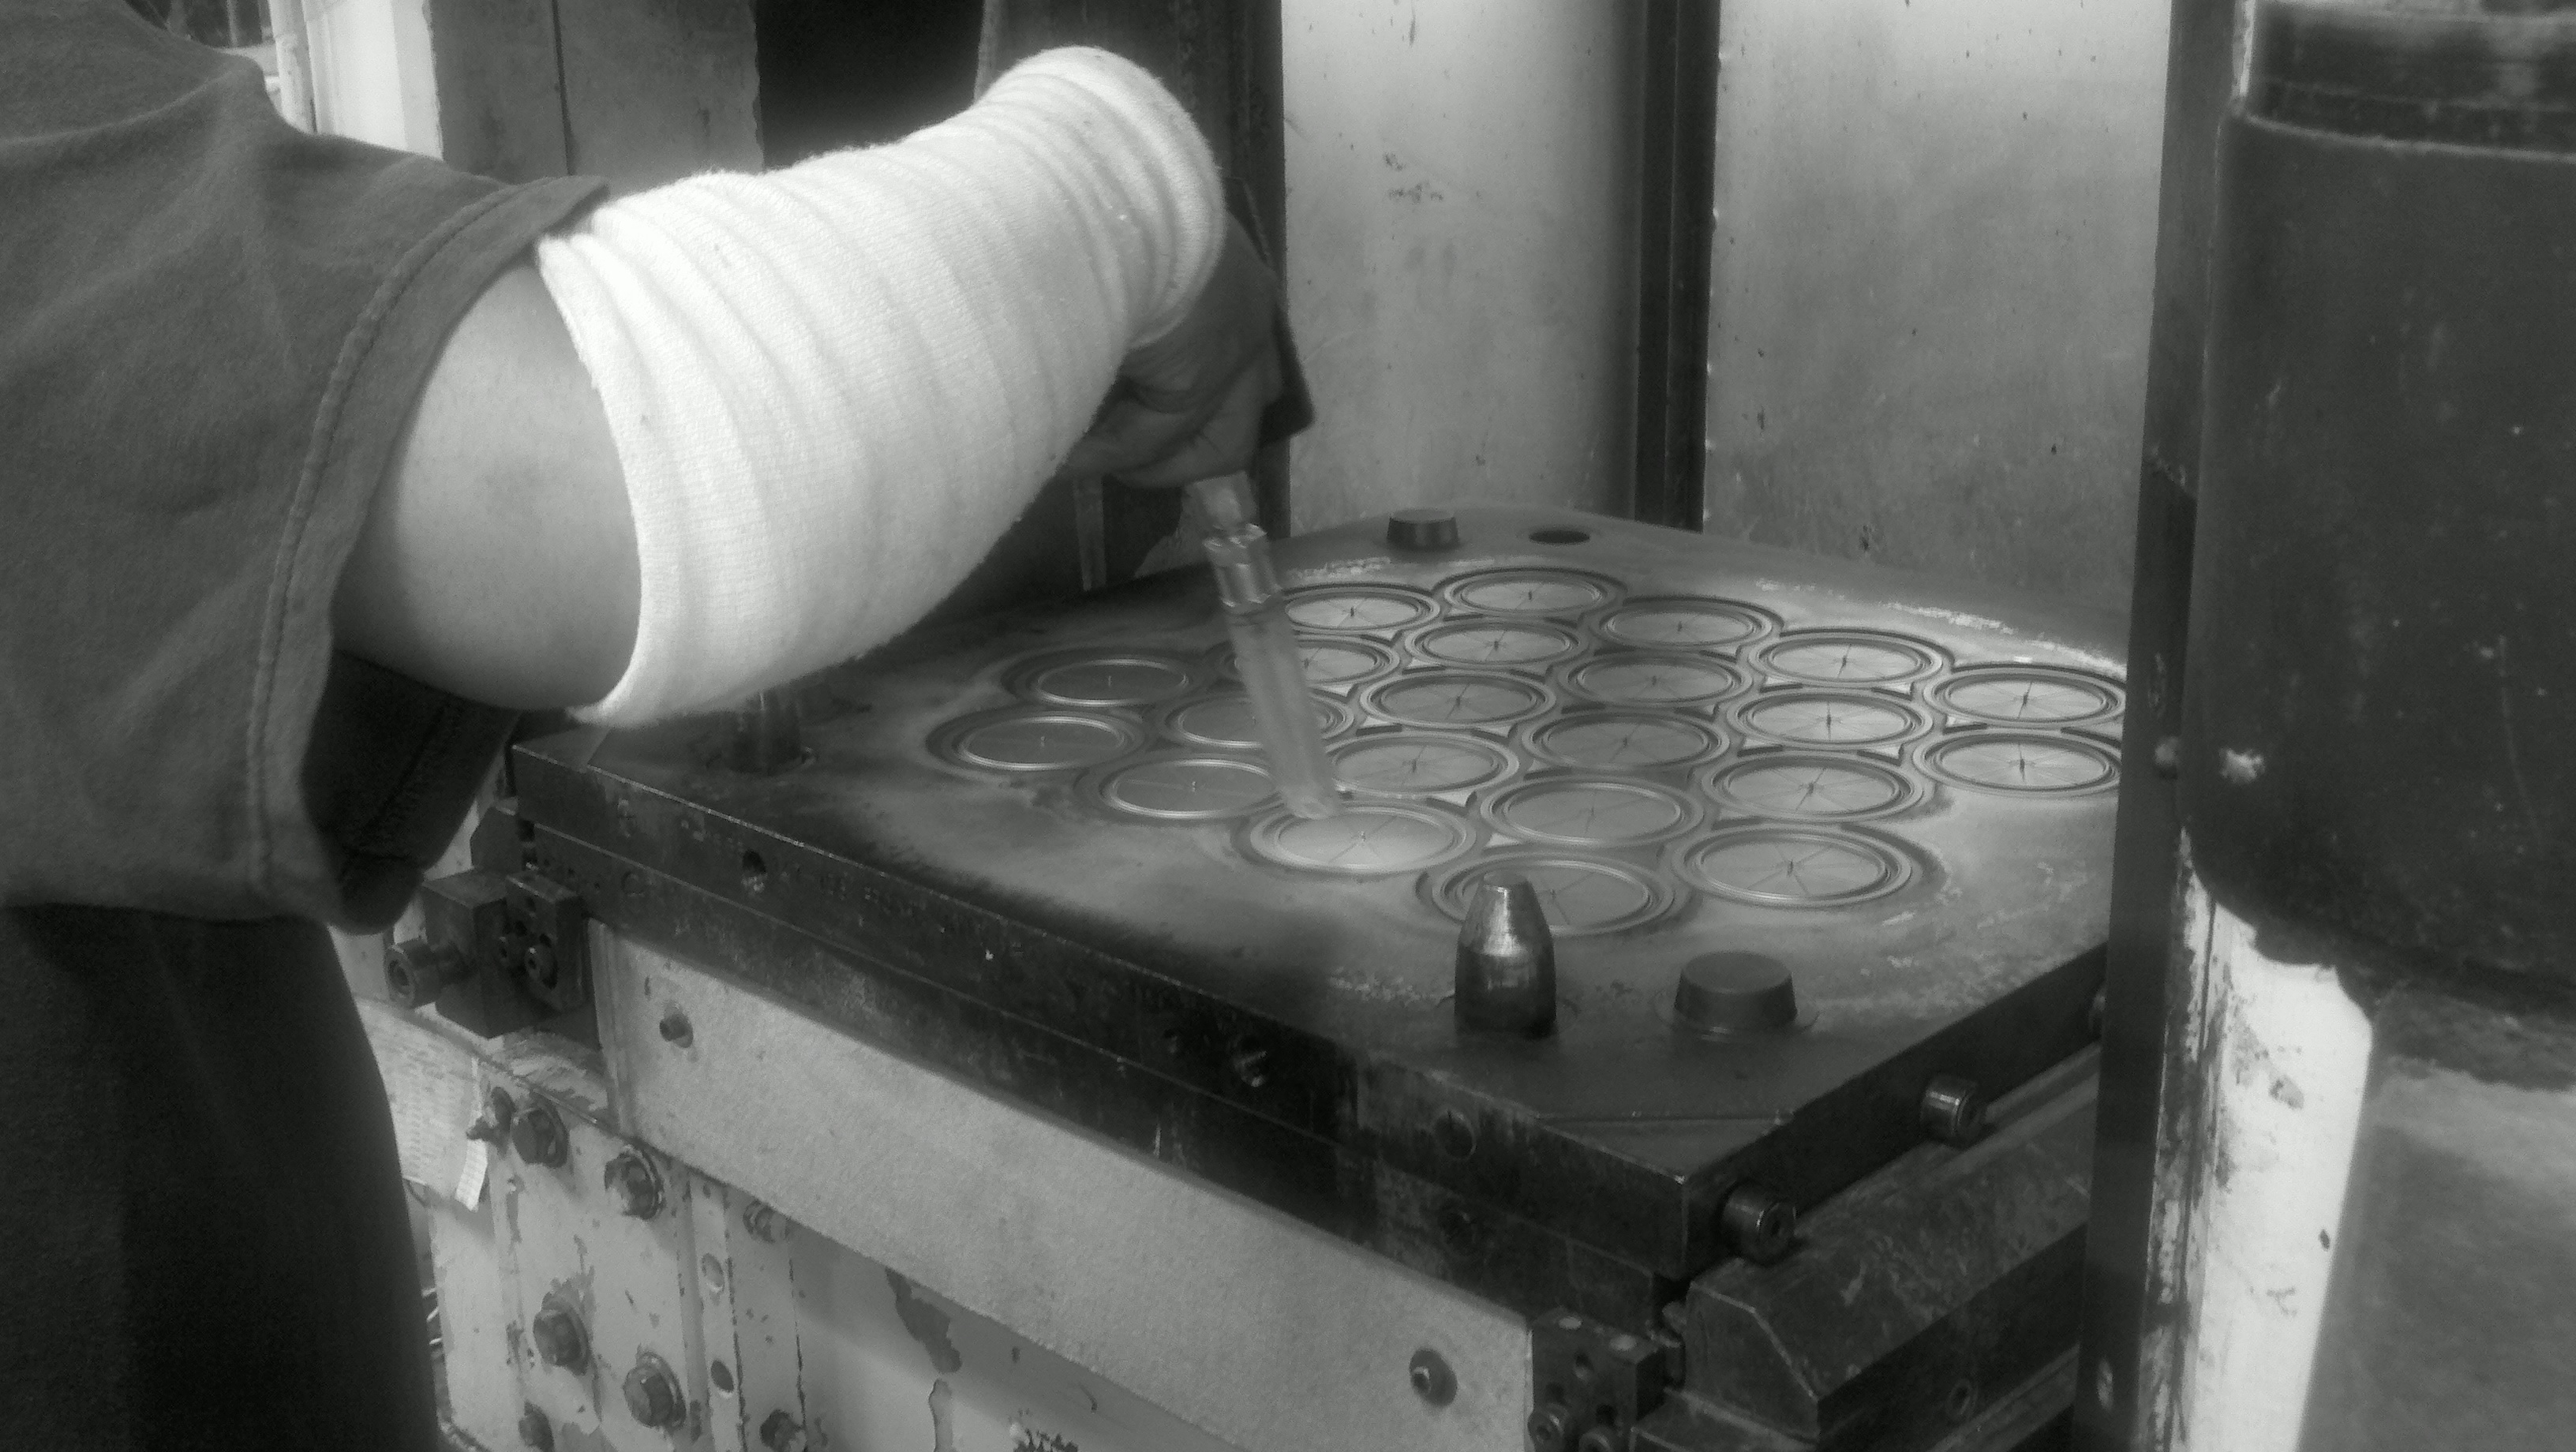 Dry ice blasting rubber molds